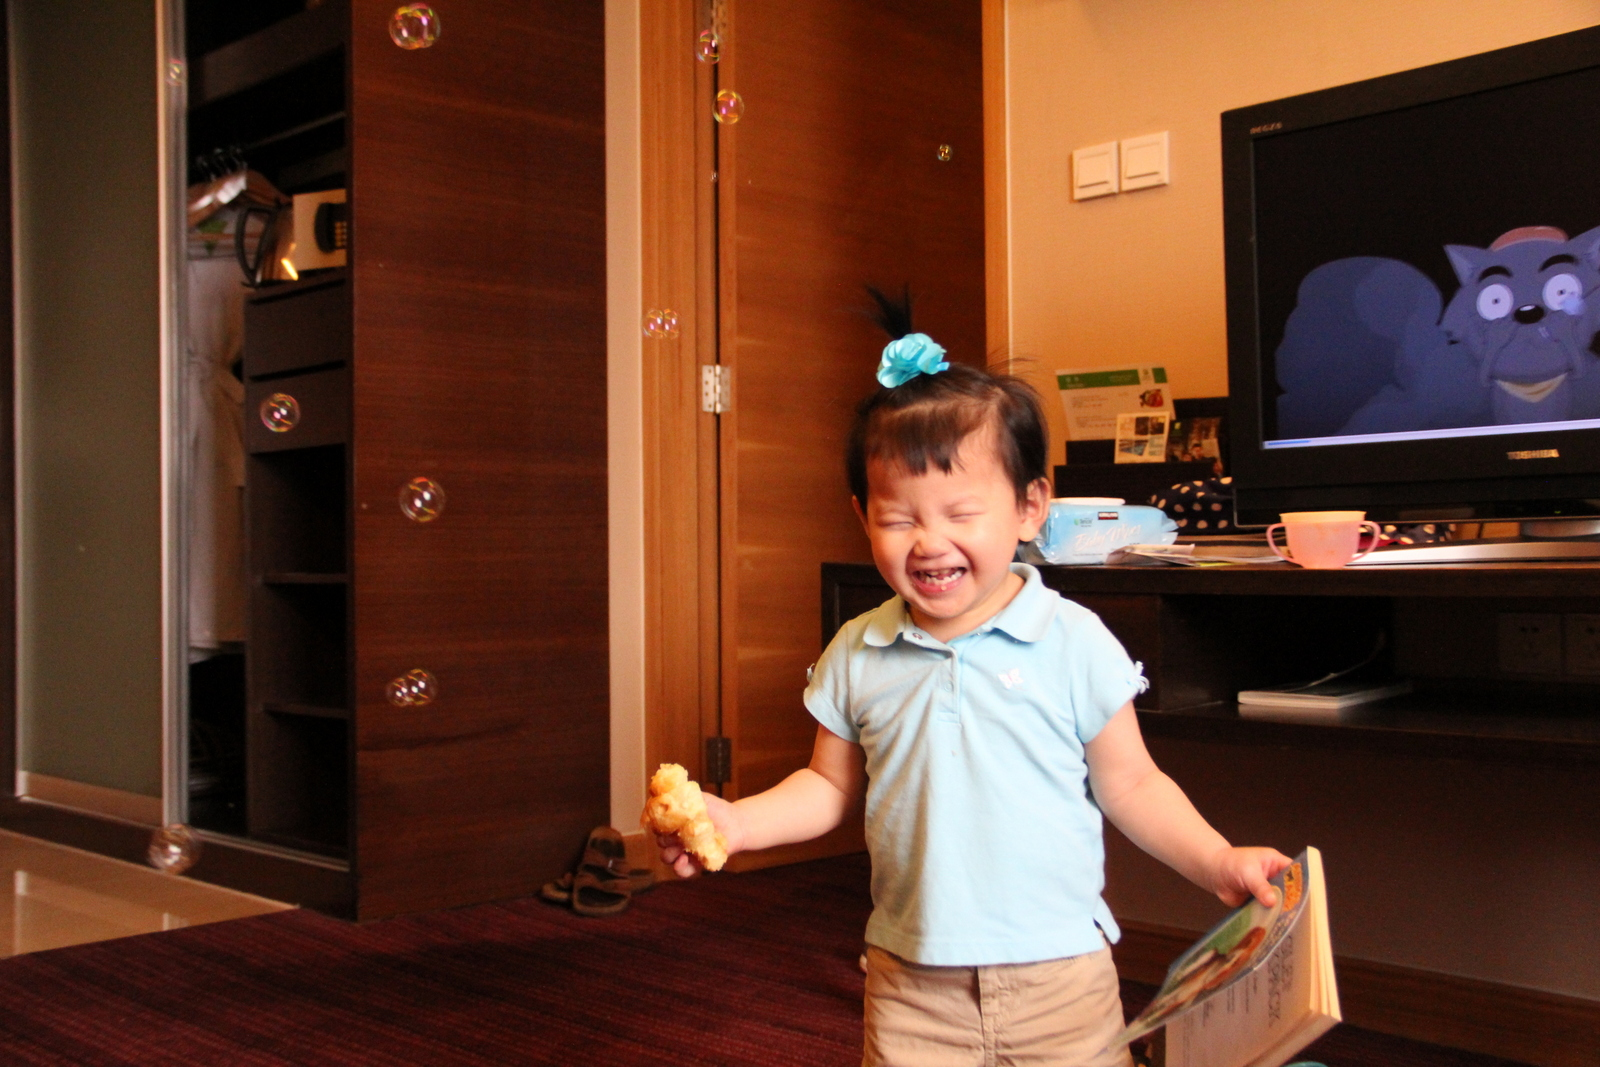 Blowing bubbles in the hotel room. (She usually needs to have something in each hand to feel safe).